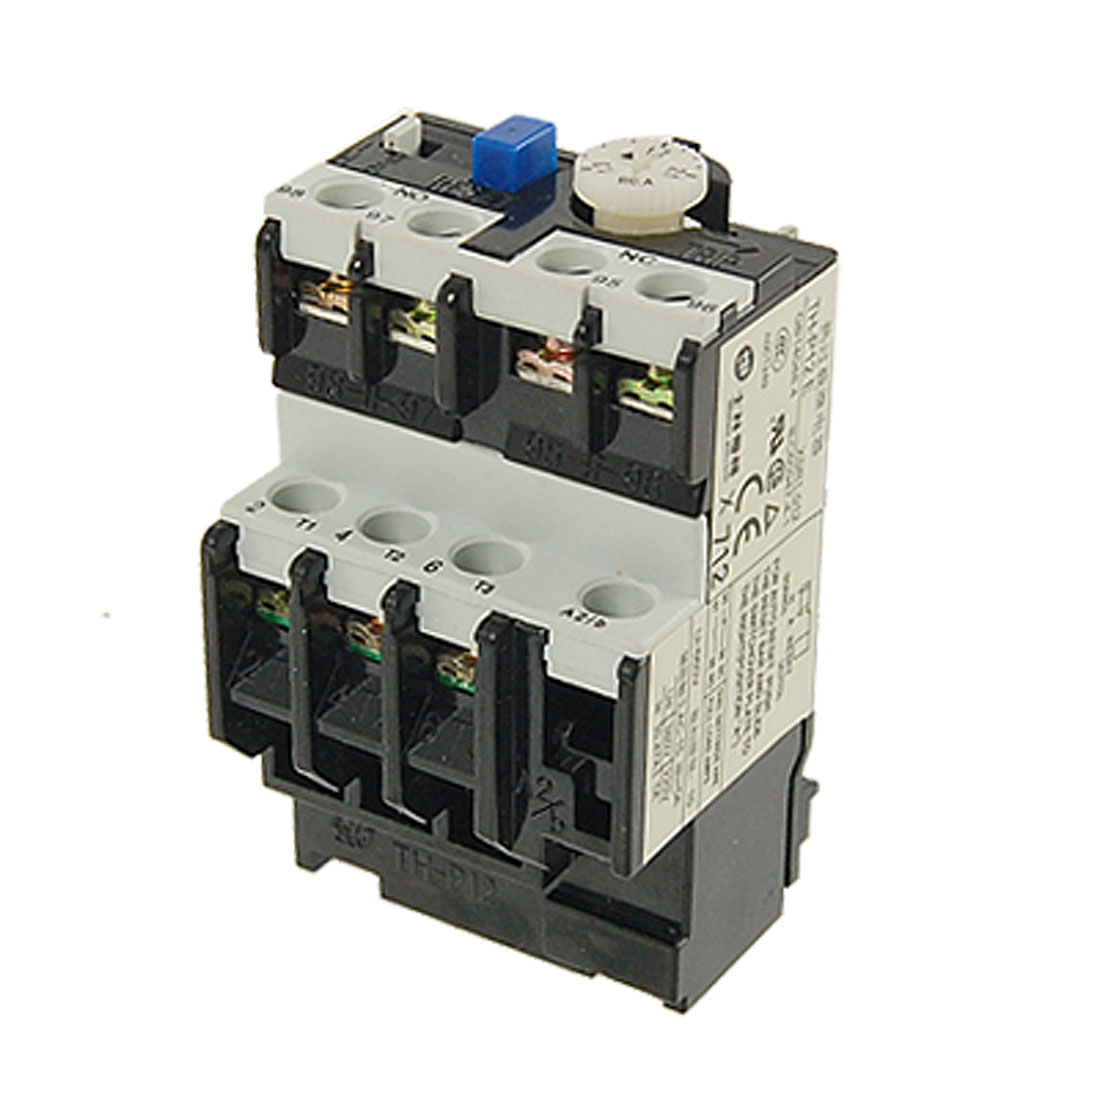 TH-P12E Manual Auto Conversion Type AC 220V/380V 3 Pole Thermal Overload Relay 1.3-2.1A